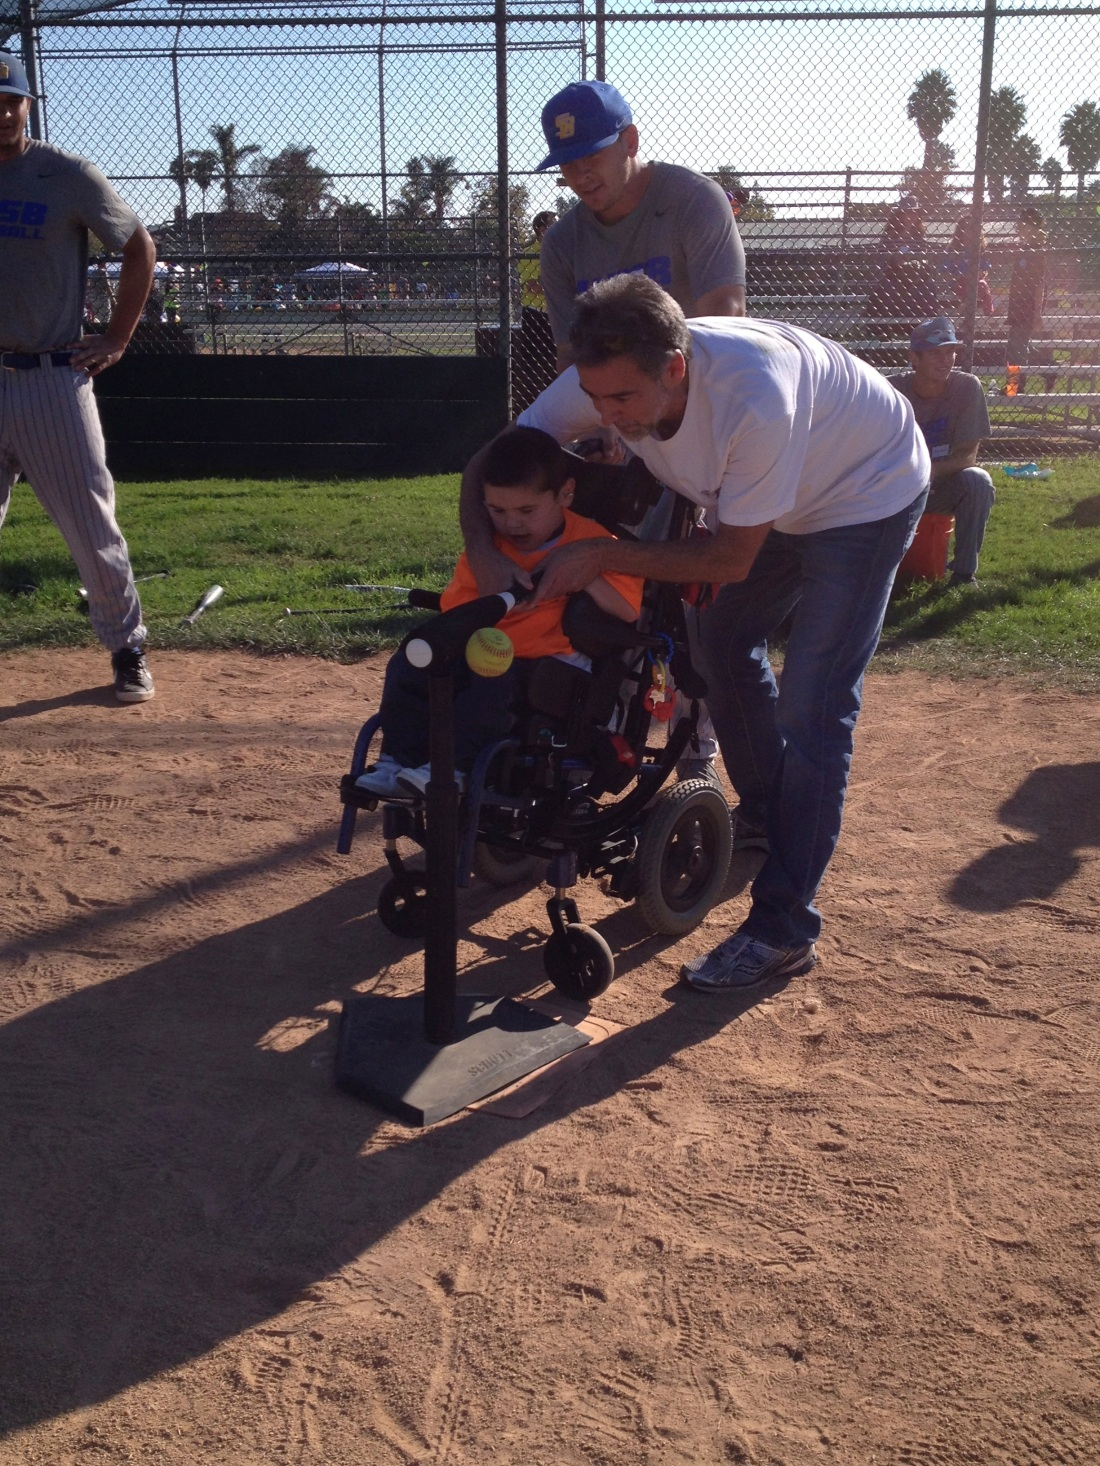 Rudy's first t-ball game with the UCSB Gauchos!